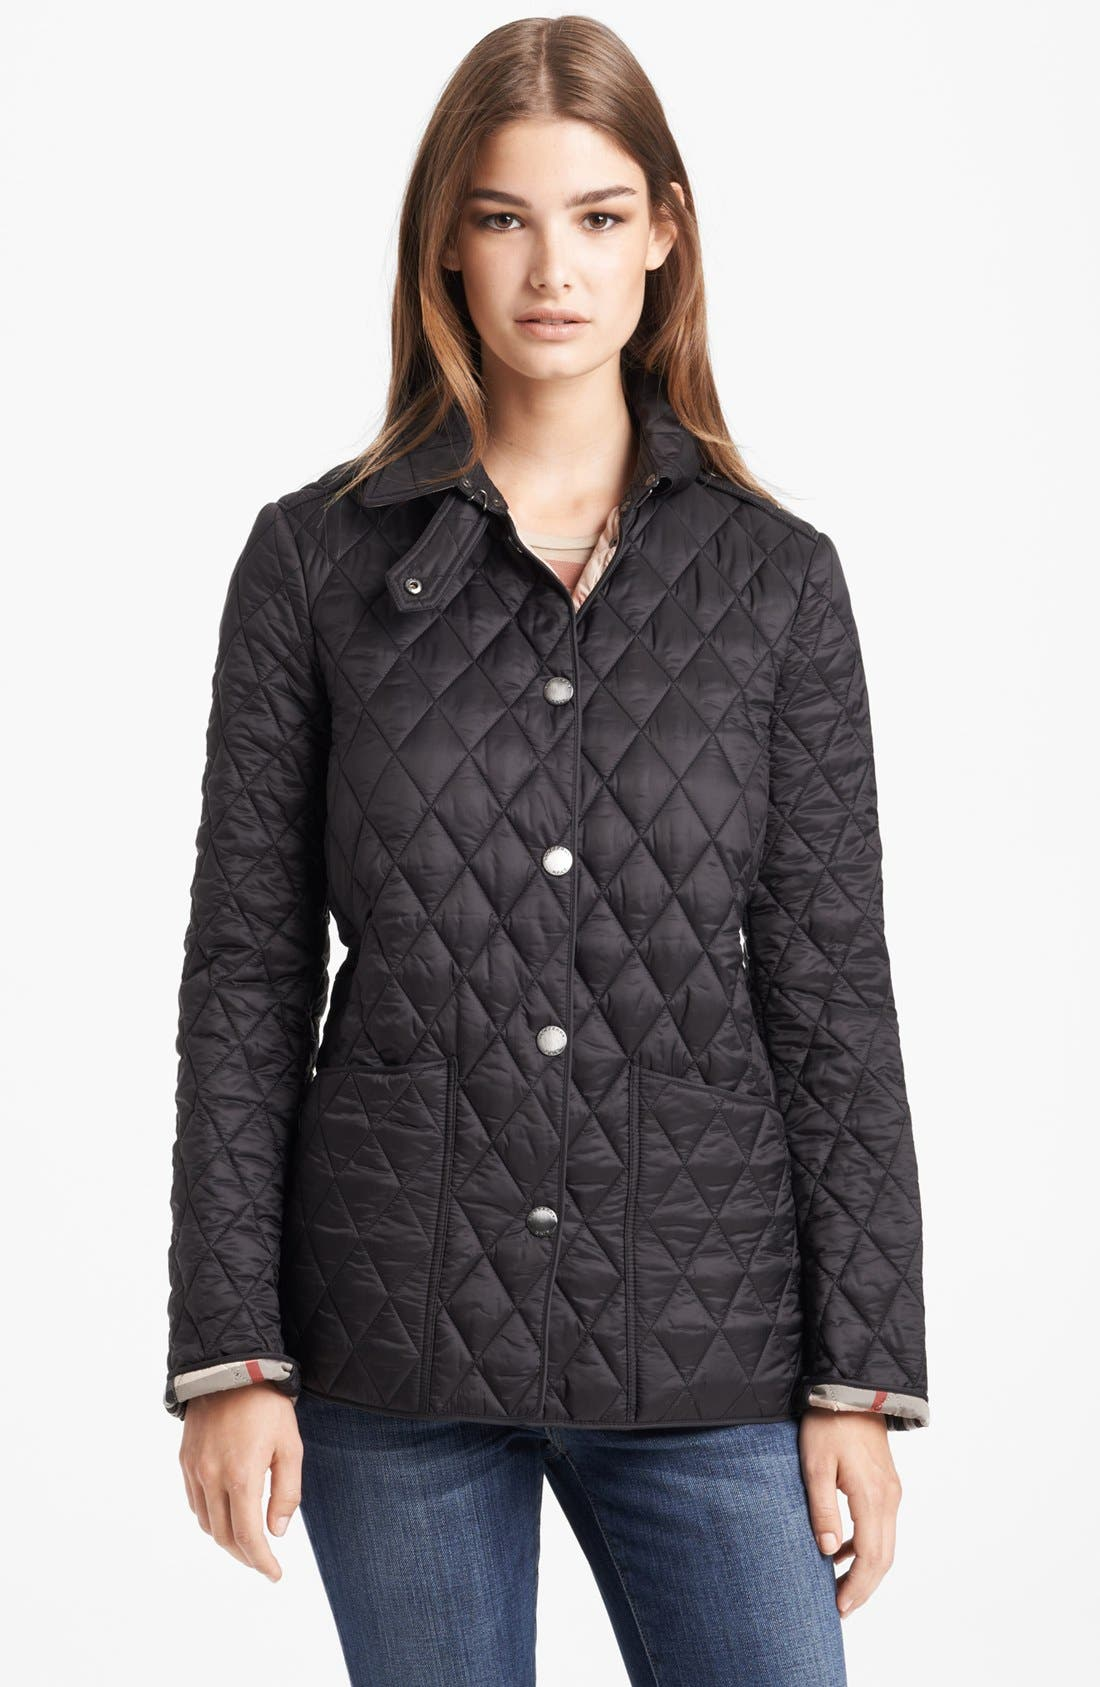 burberry jacket quilt product ashurst authentic black quilted mens nwt new brit